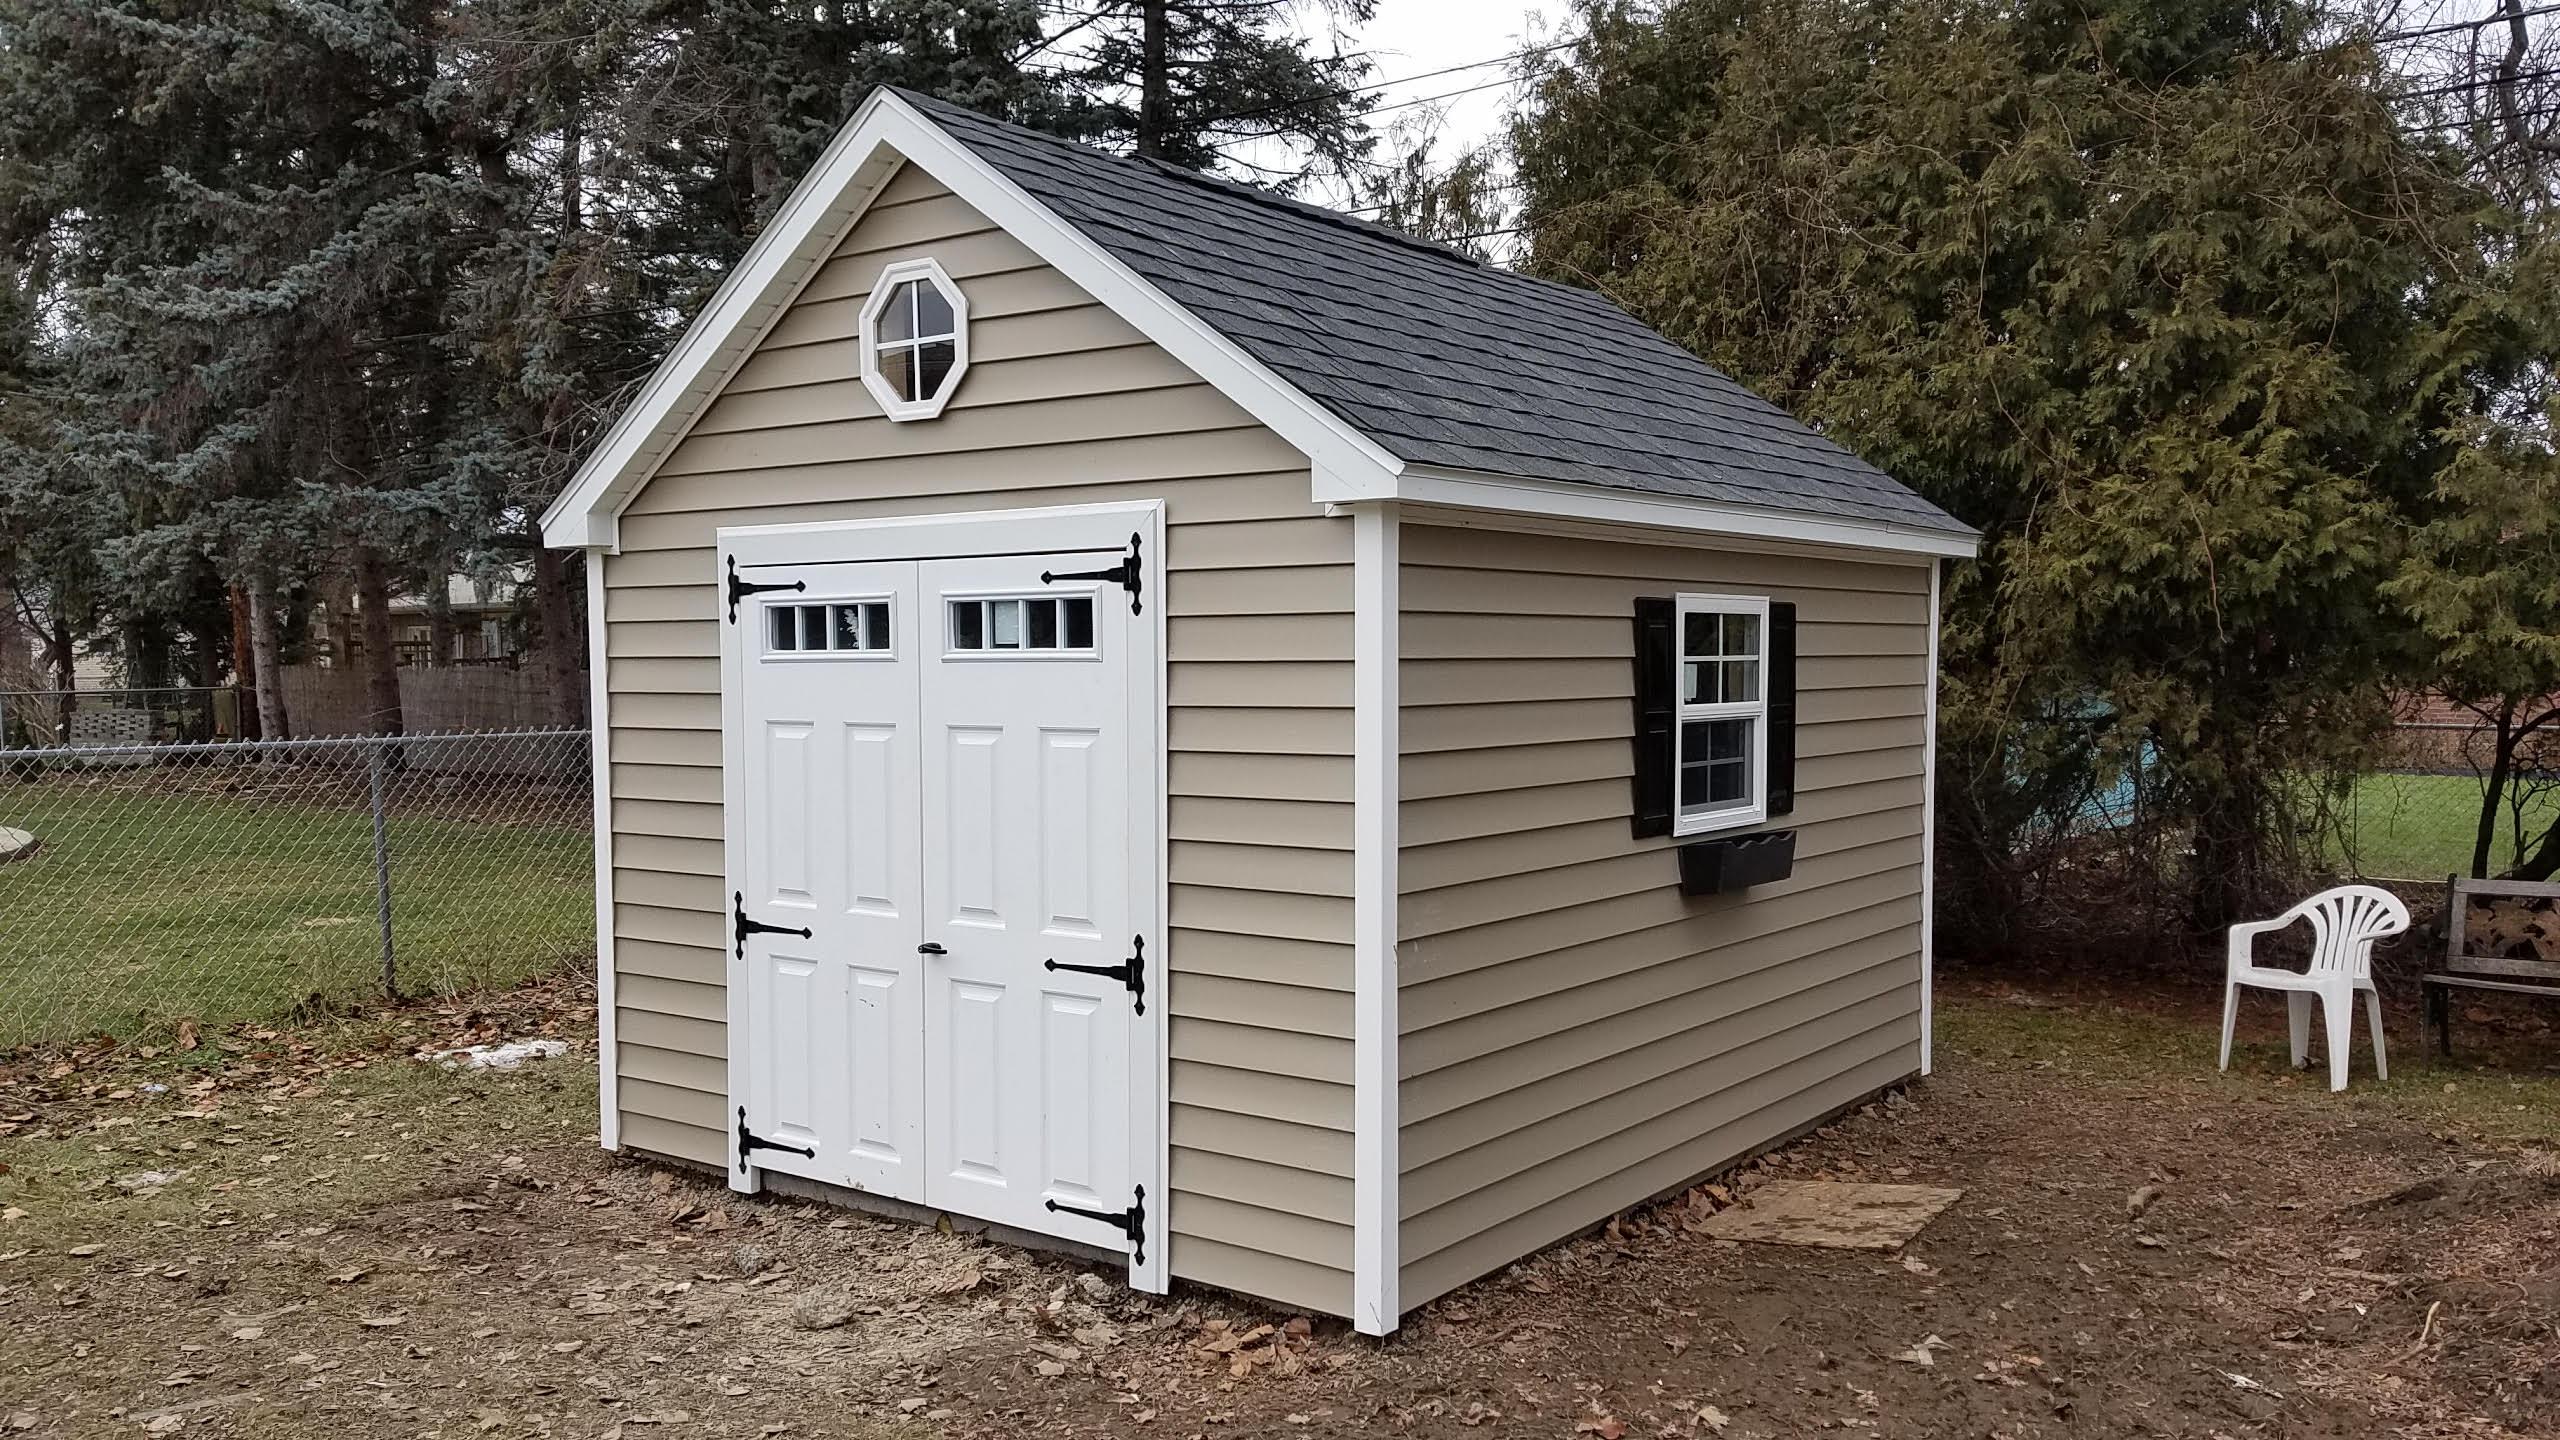 Gable style sheds by star construction for Shed styles